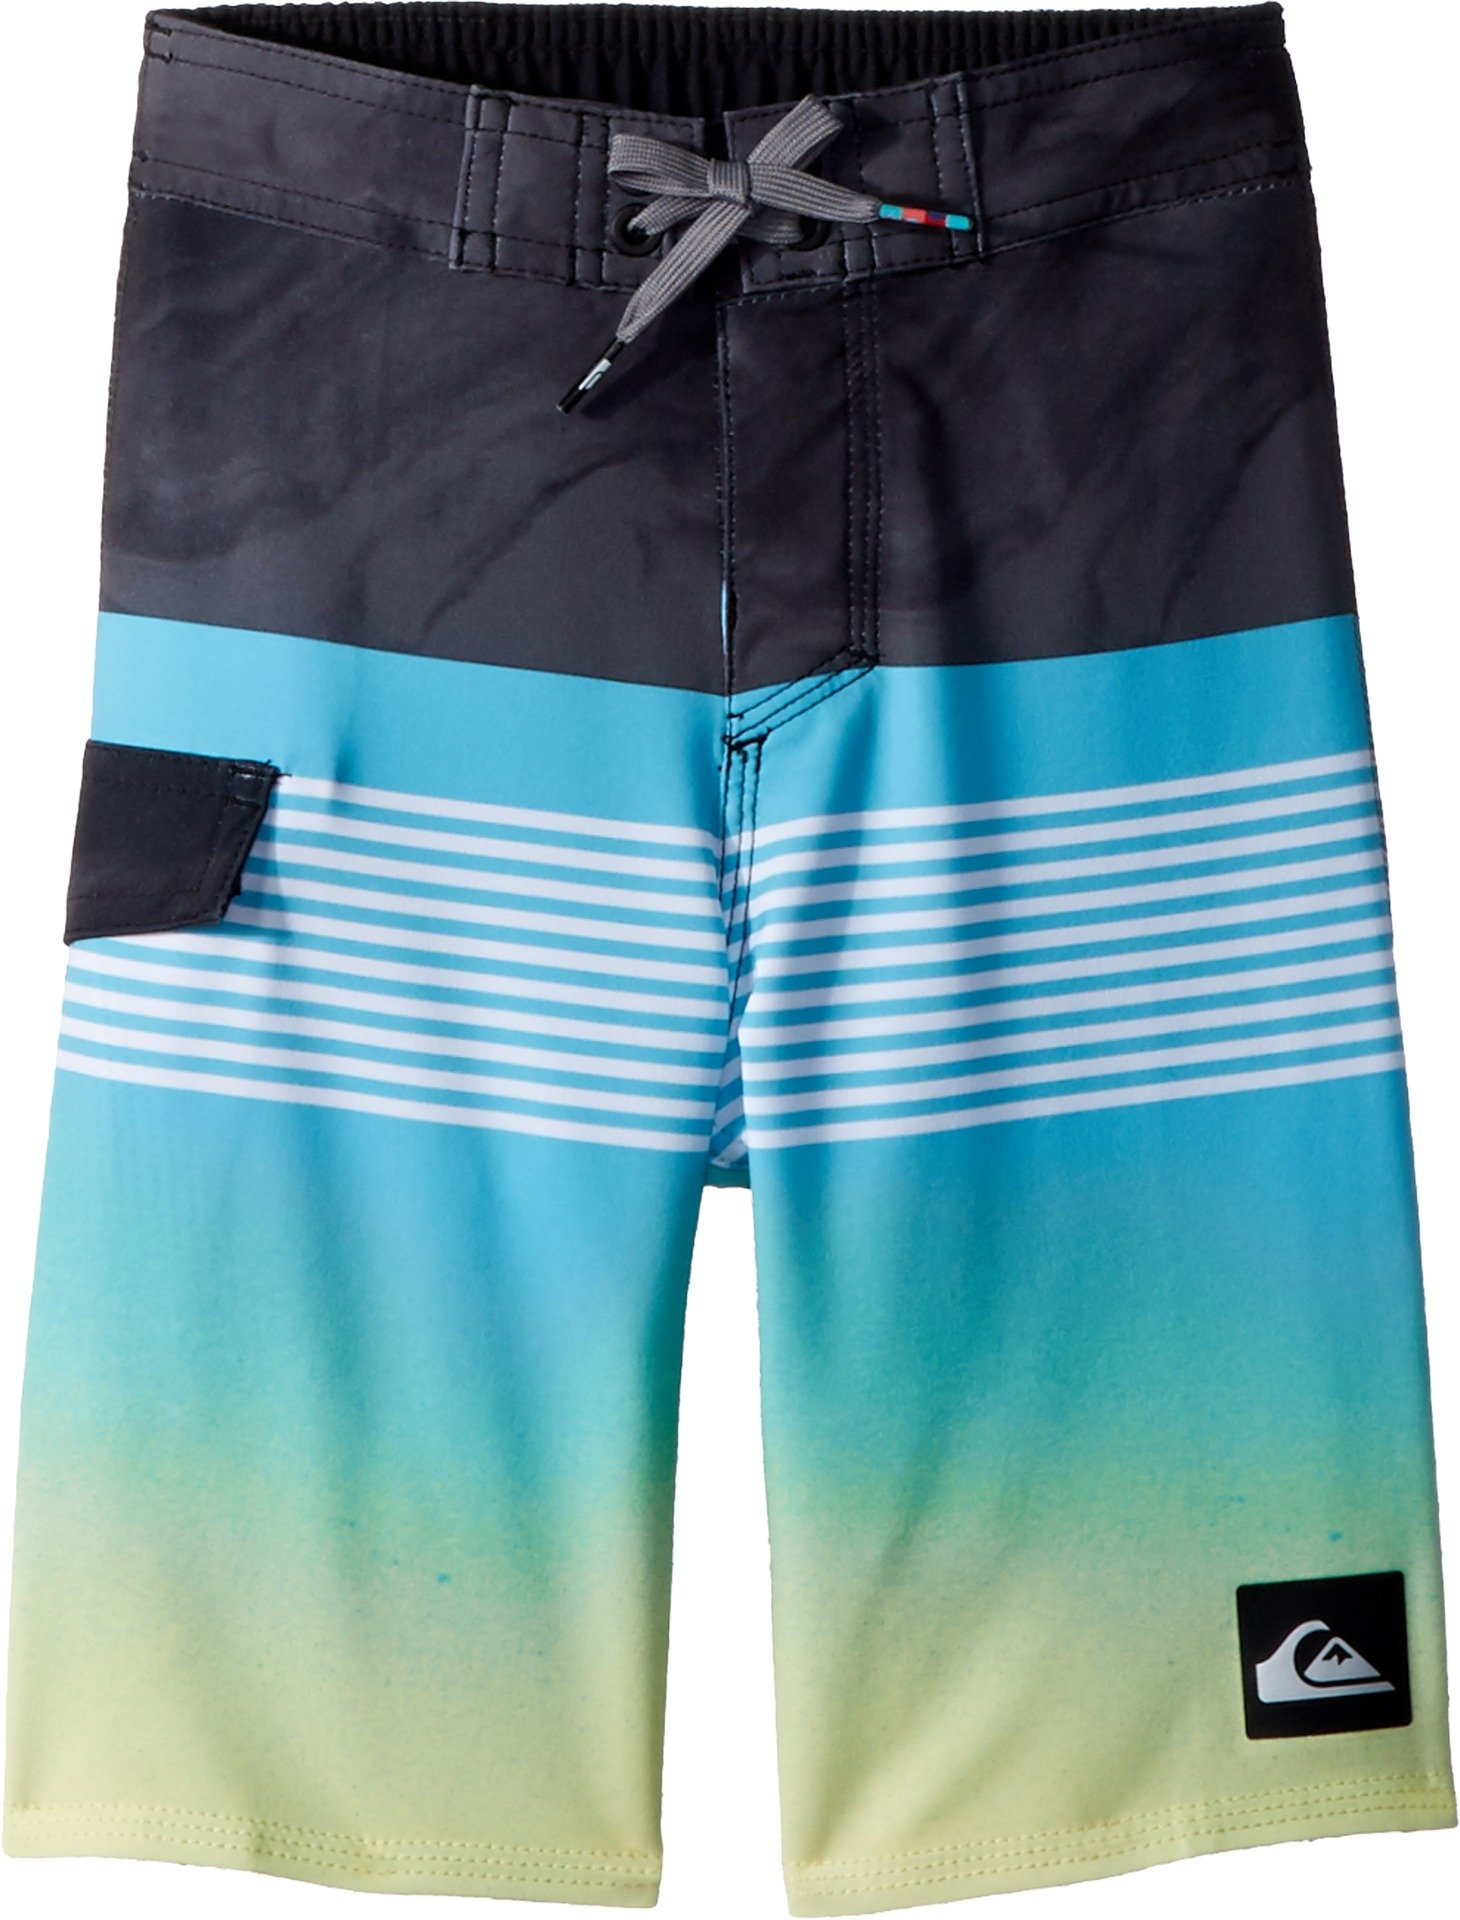 Quiksilver Little Boys' Highline Lava Division Youth Boardshort Swim Trunk, Cyan Blue, 5